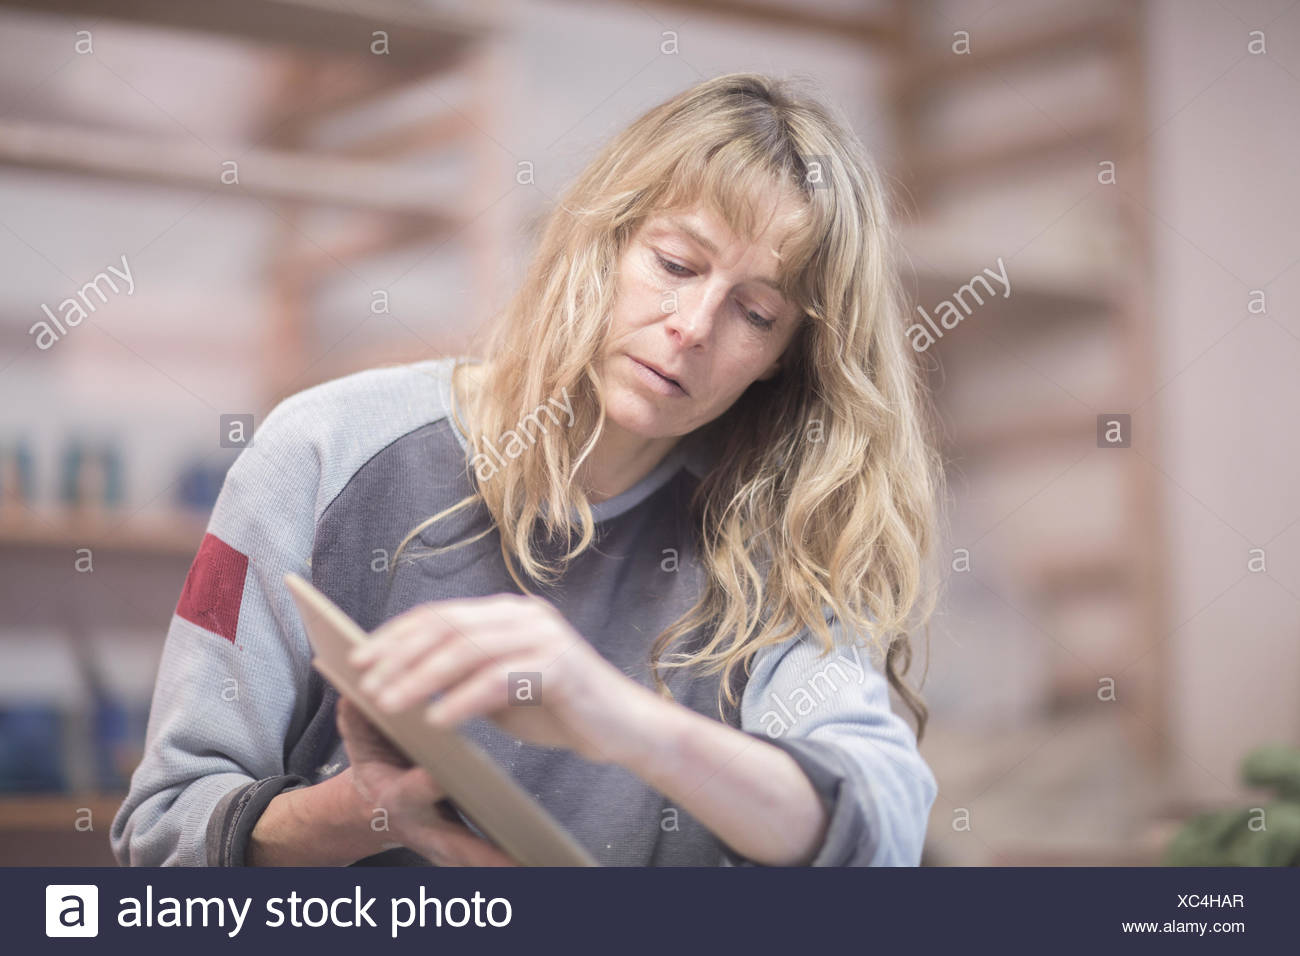 Female potter touching edge of plate in workshop - Stock Image